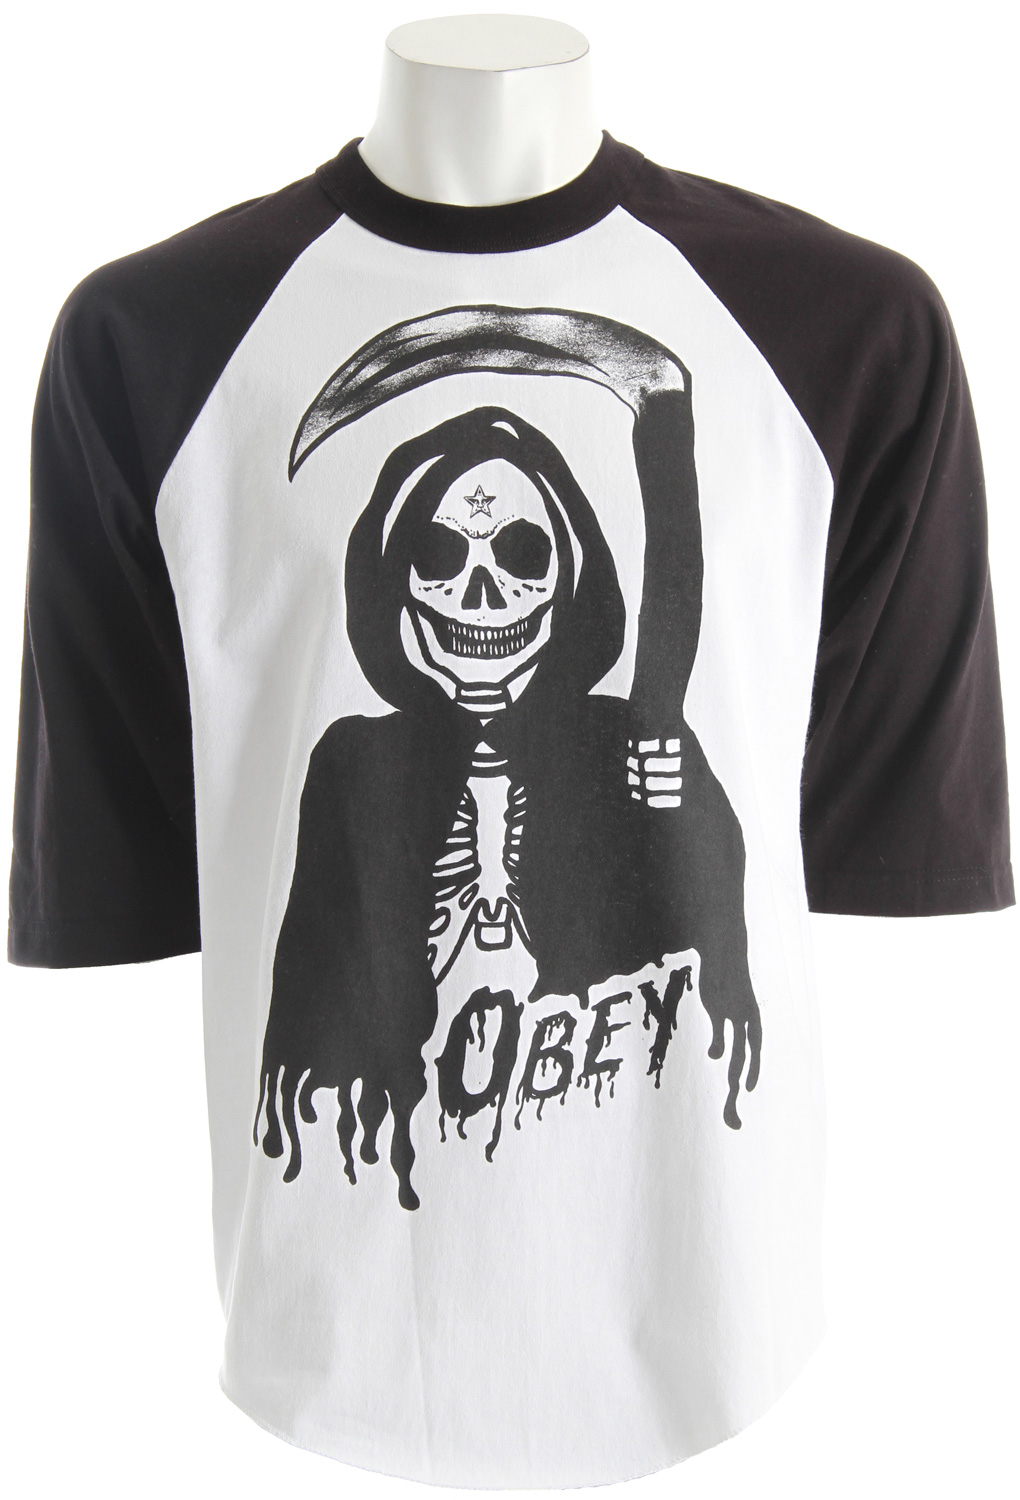 OBEY heavy-weight, regular-fit tee, 3/4 sleeve tee with color-blocked sleeves: 100% cotton. - $15.95